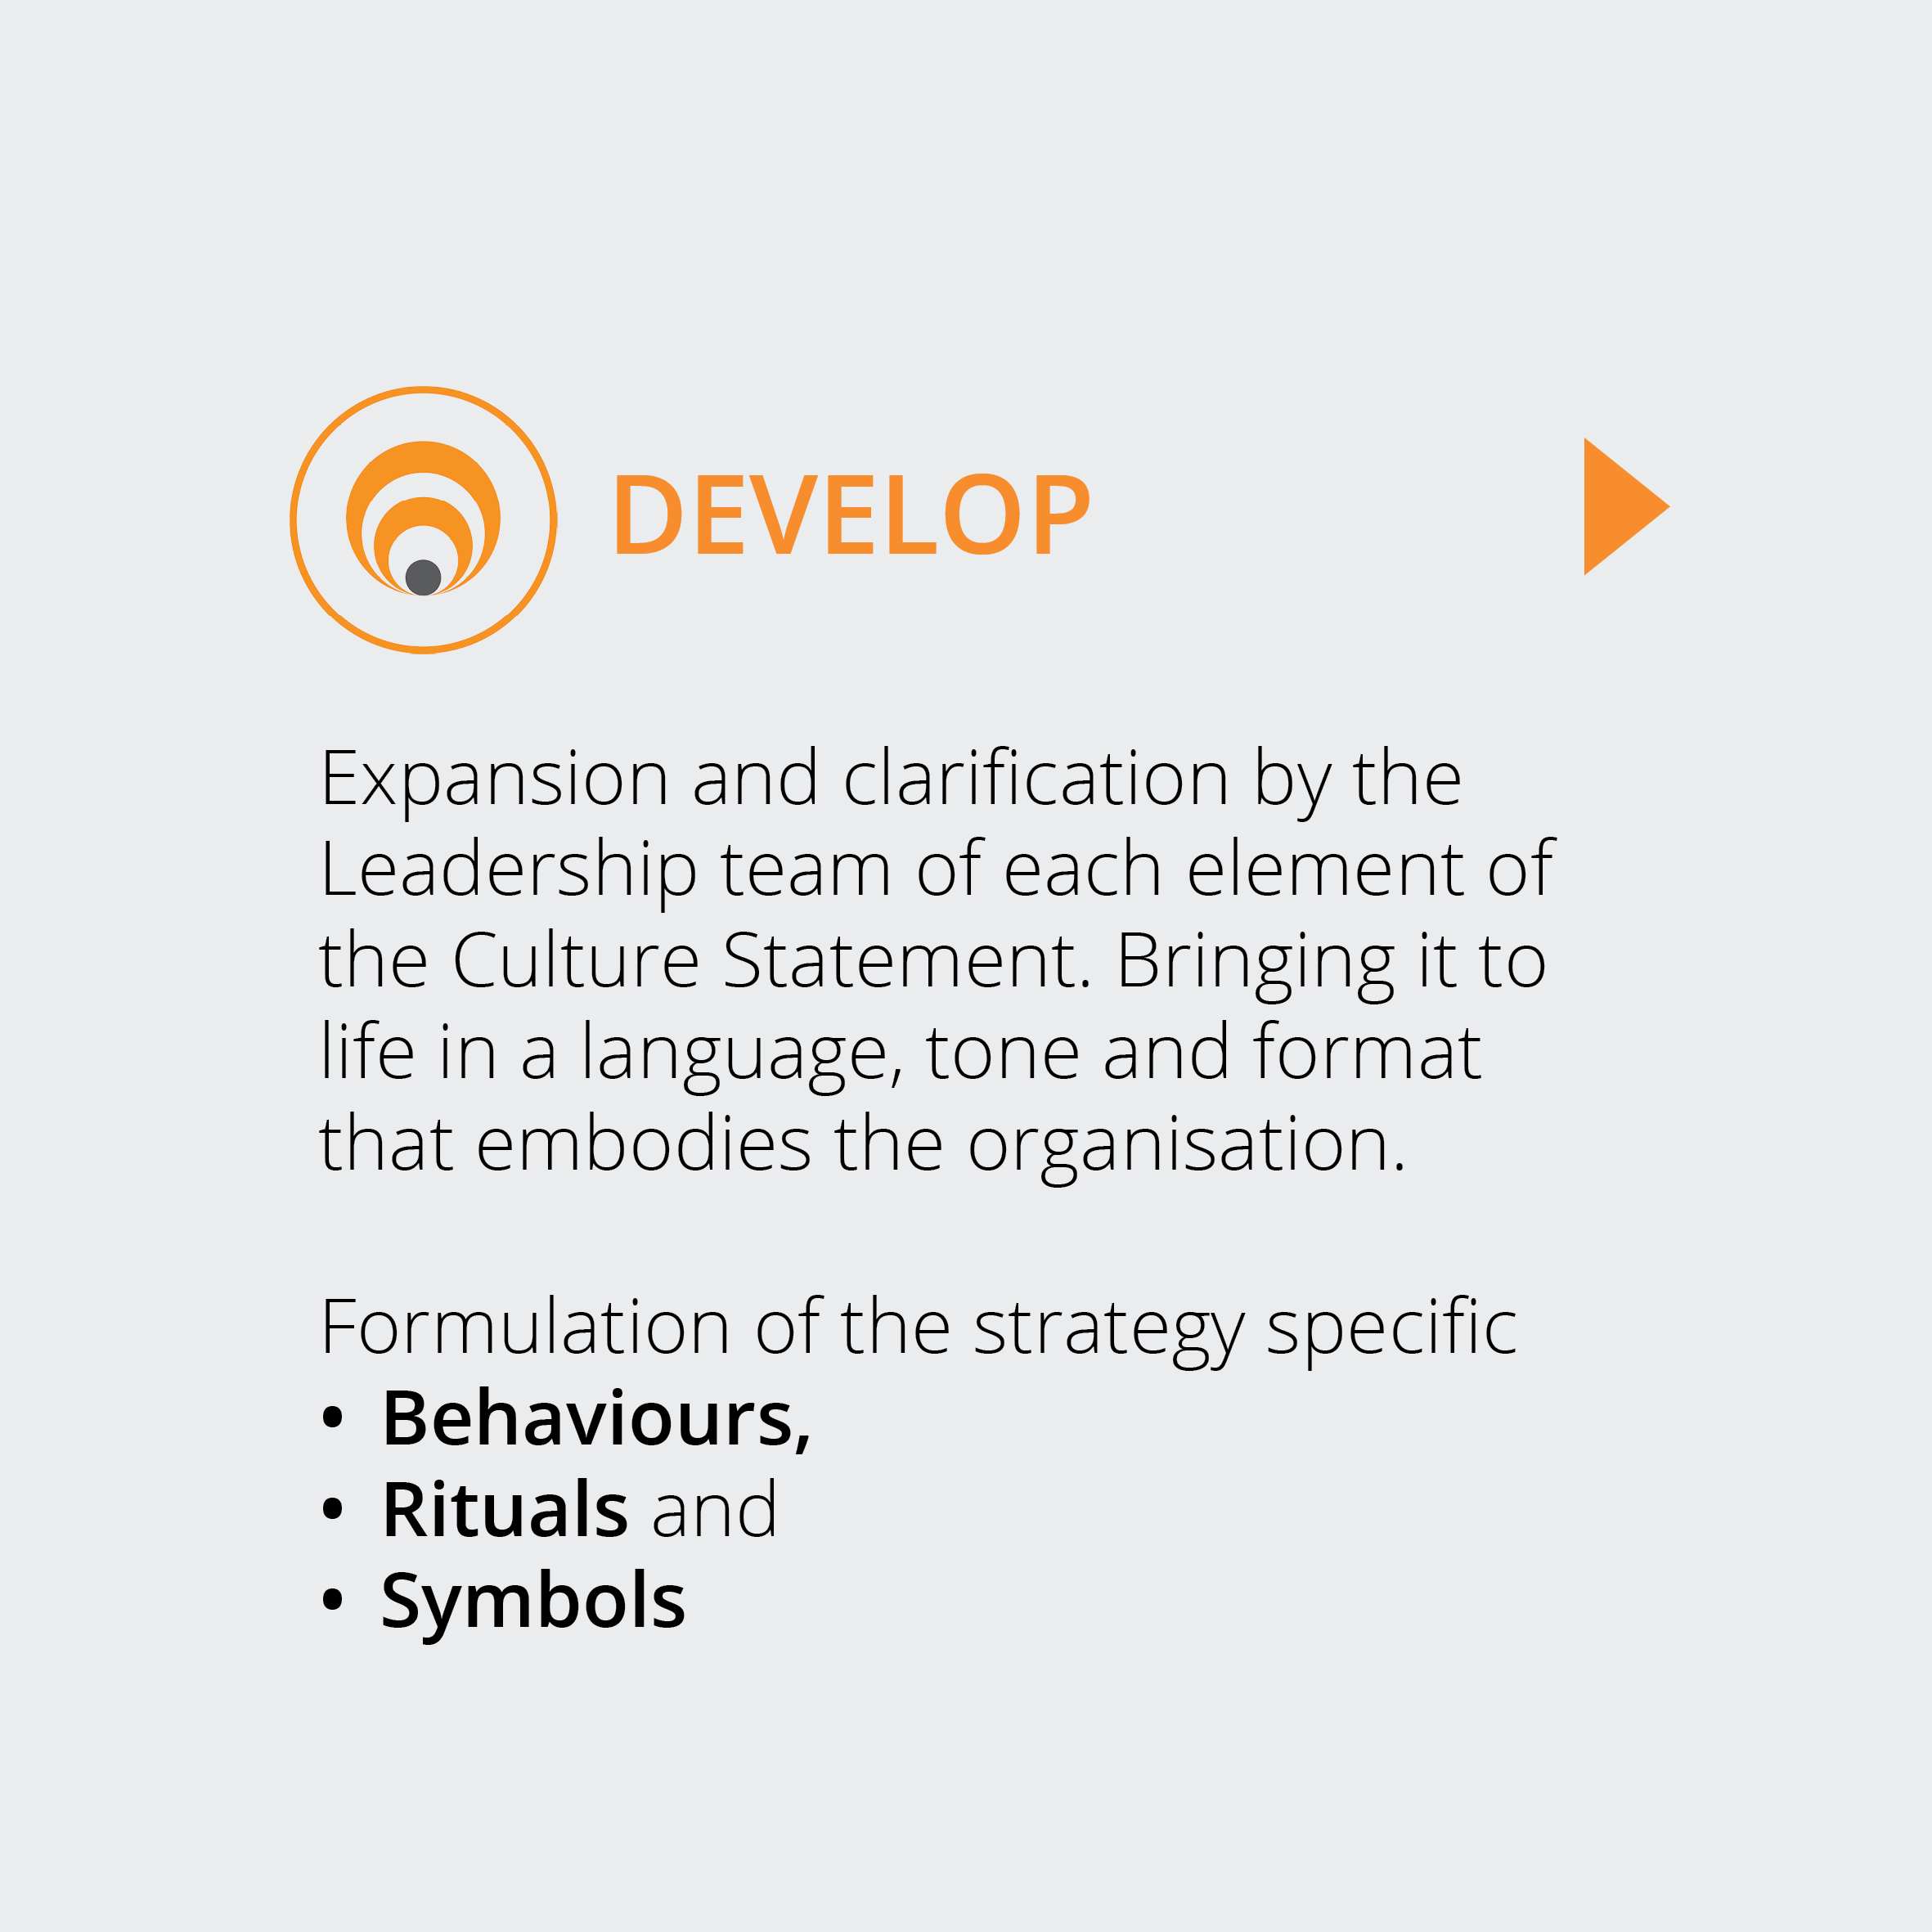 Square image for Develop - the 3rd stage of the culture capture process by Corporate Edge